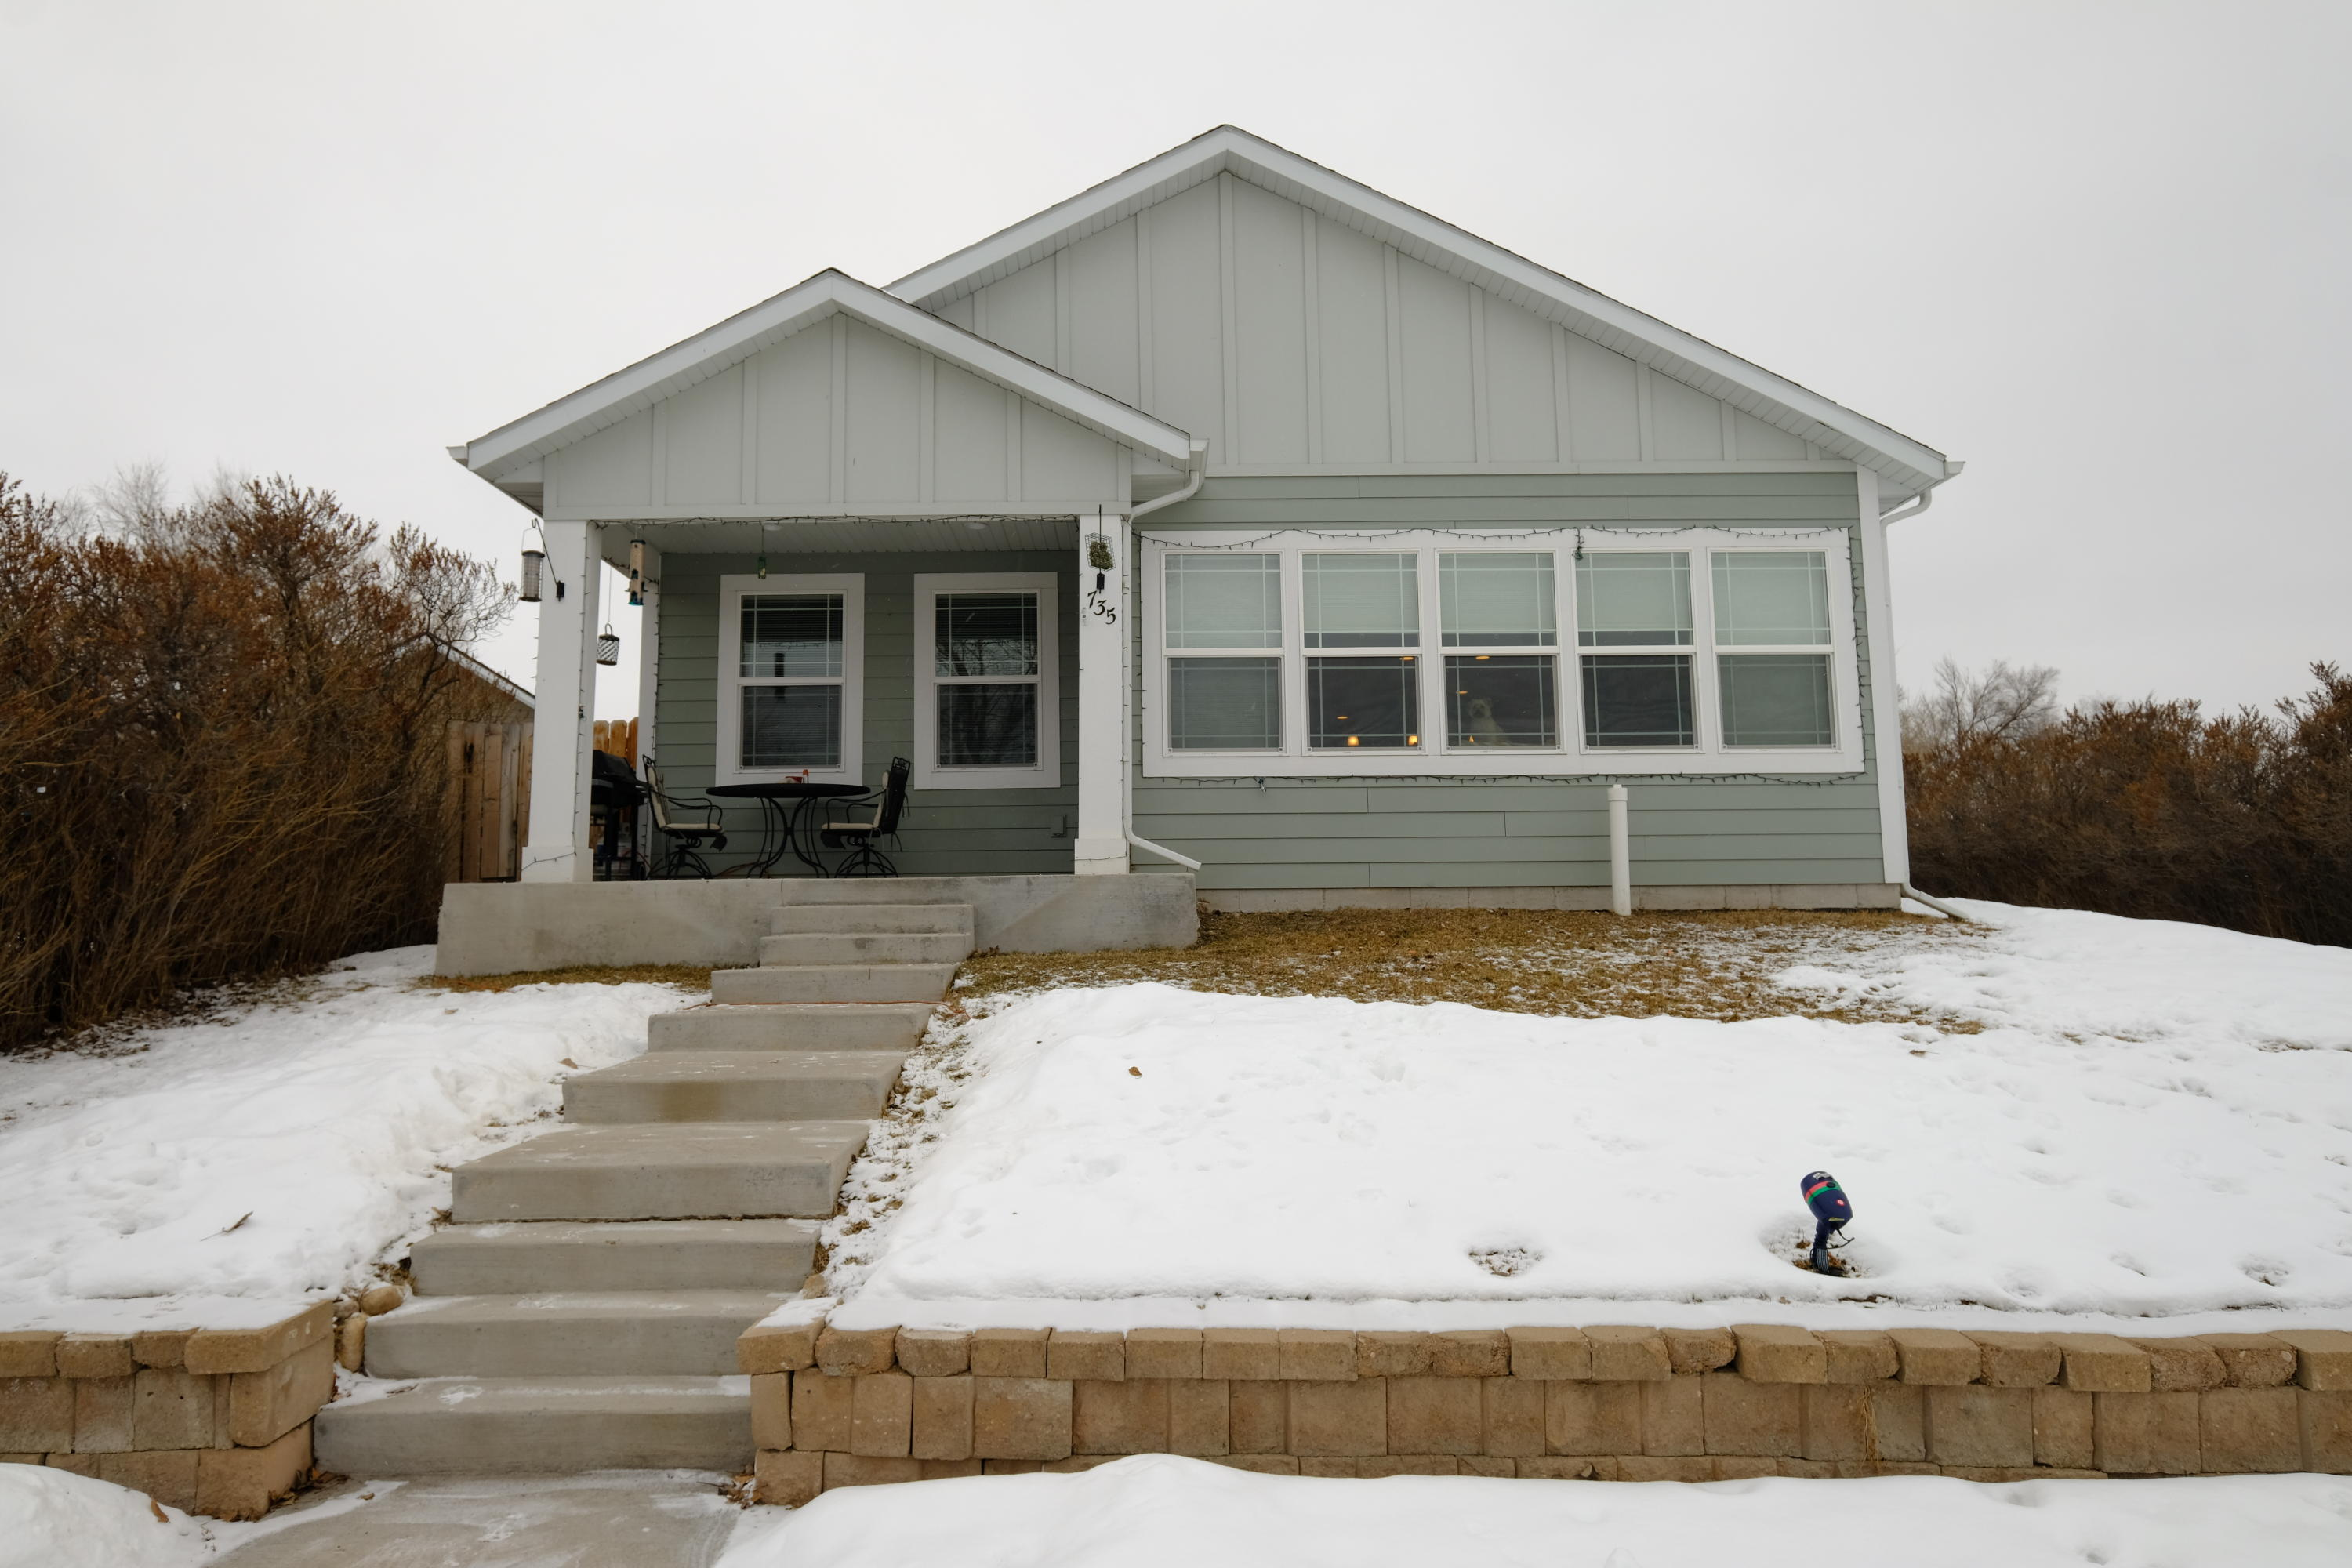 735 W 8th Street, Sheridan, Wyoming 82801, 3 Bedrooms Bedrooms, ,2 BathroomsBathrooms,Residential,For Sale,8th,19-132